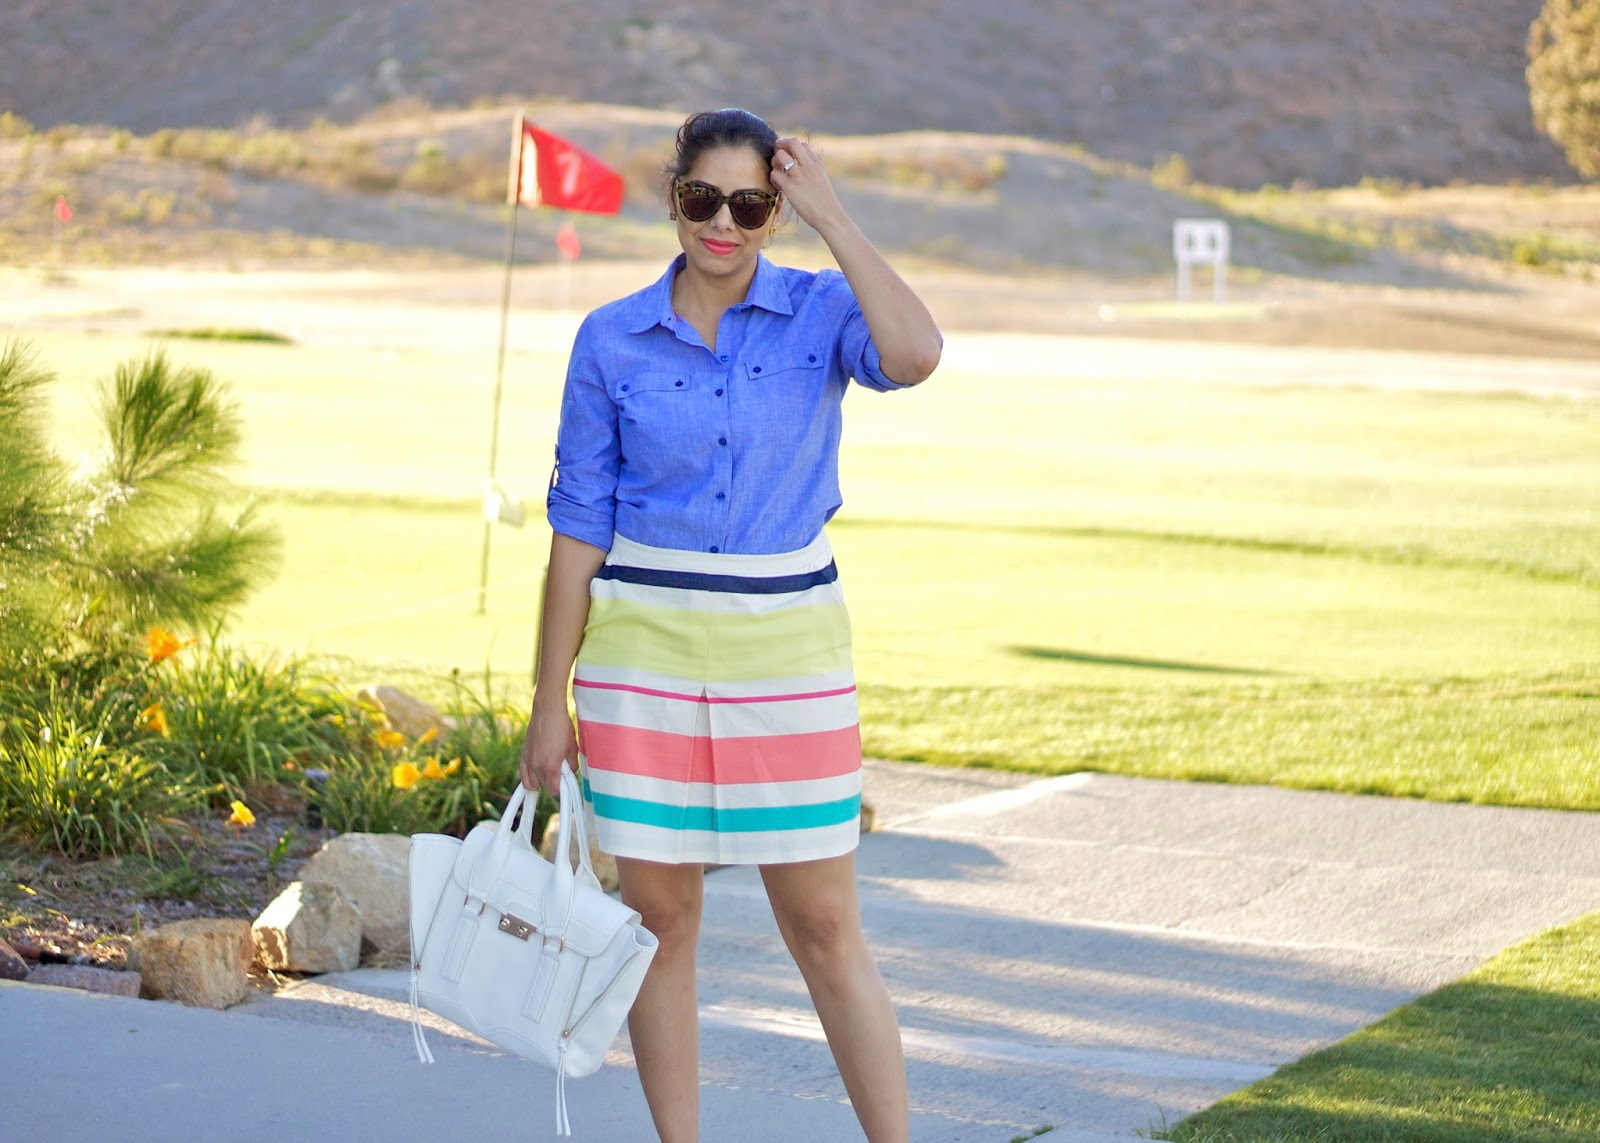 sporty prep chic, sporty waspy, sporty prep outfit, preppy outfit 2014, what to wear to the golf range, what to wear to golf san diego